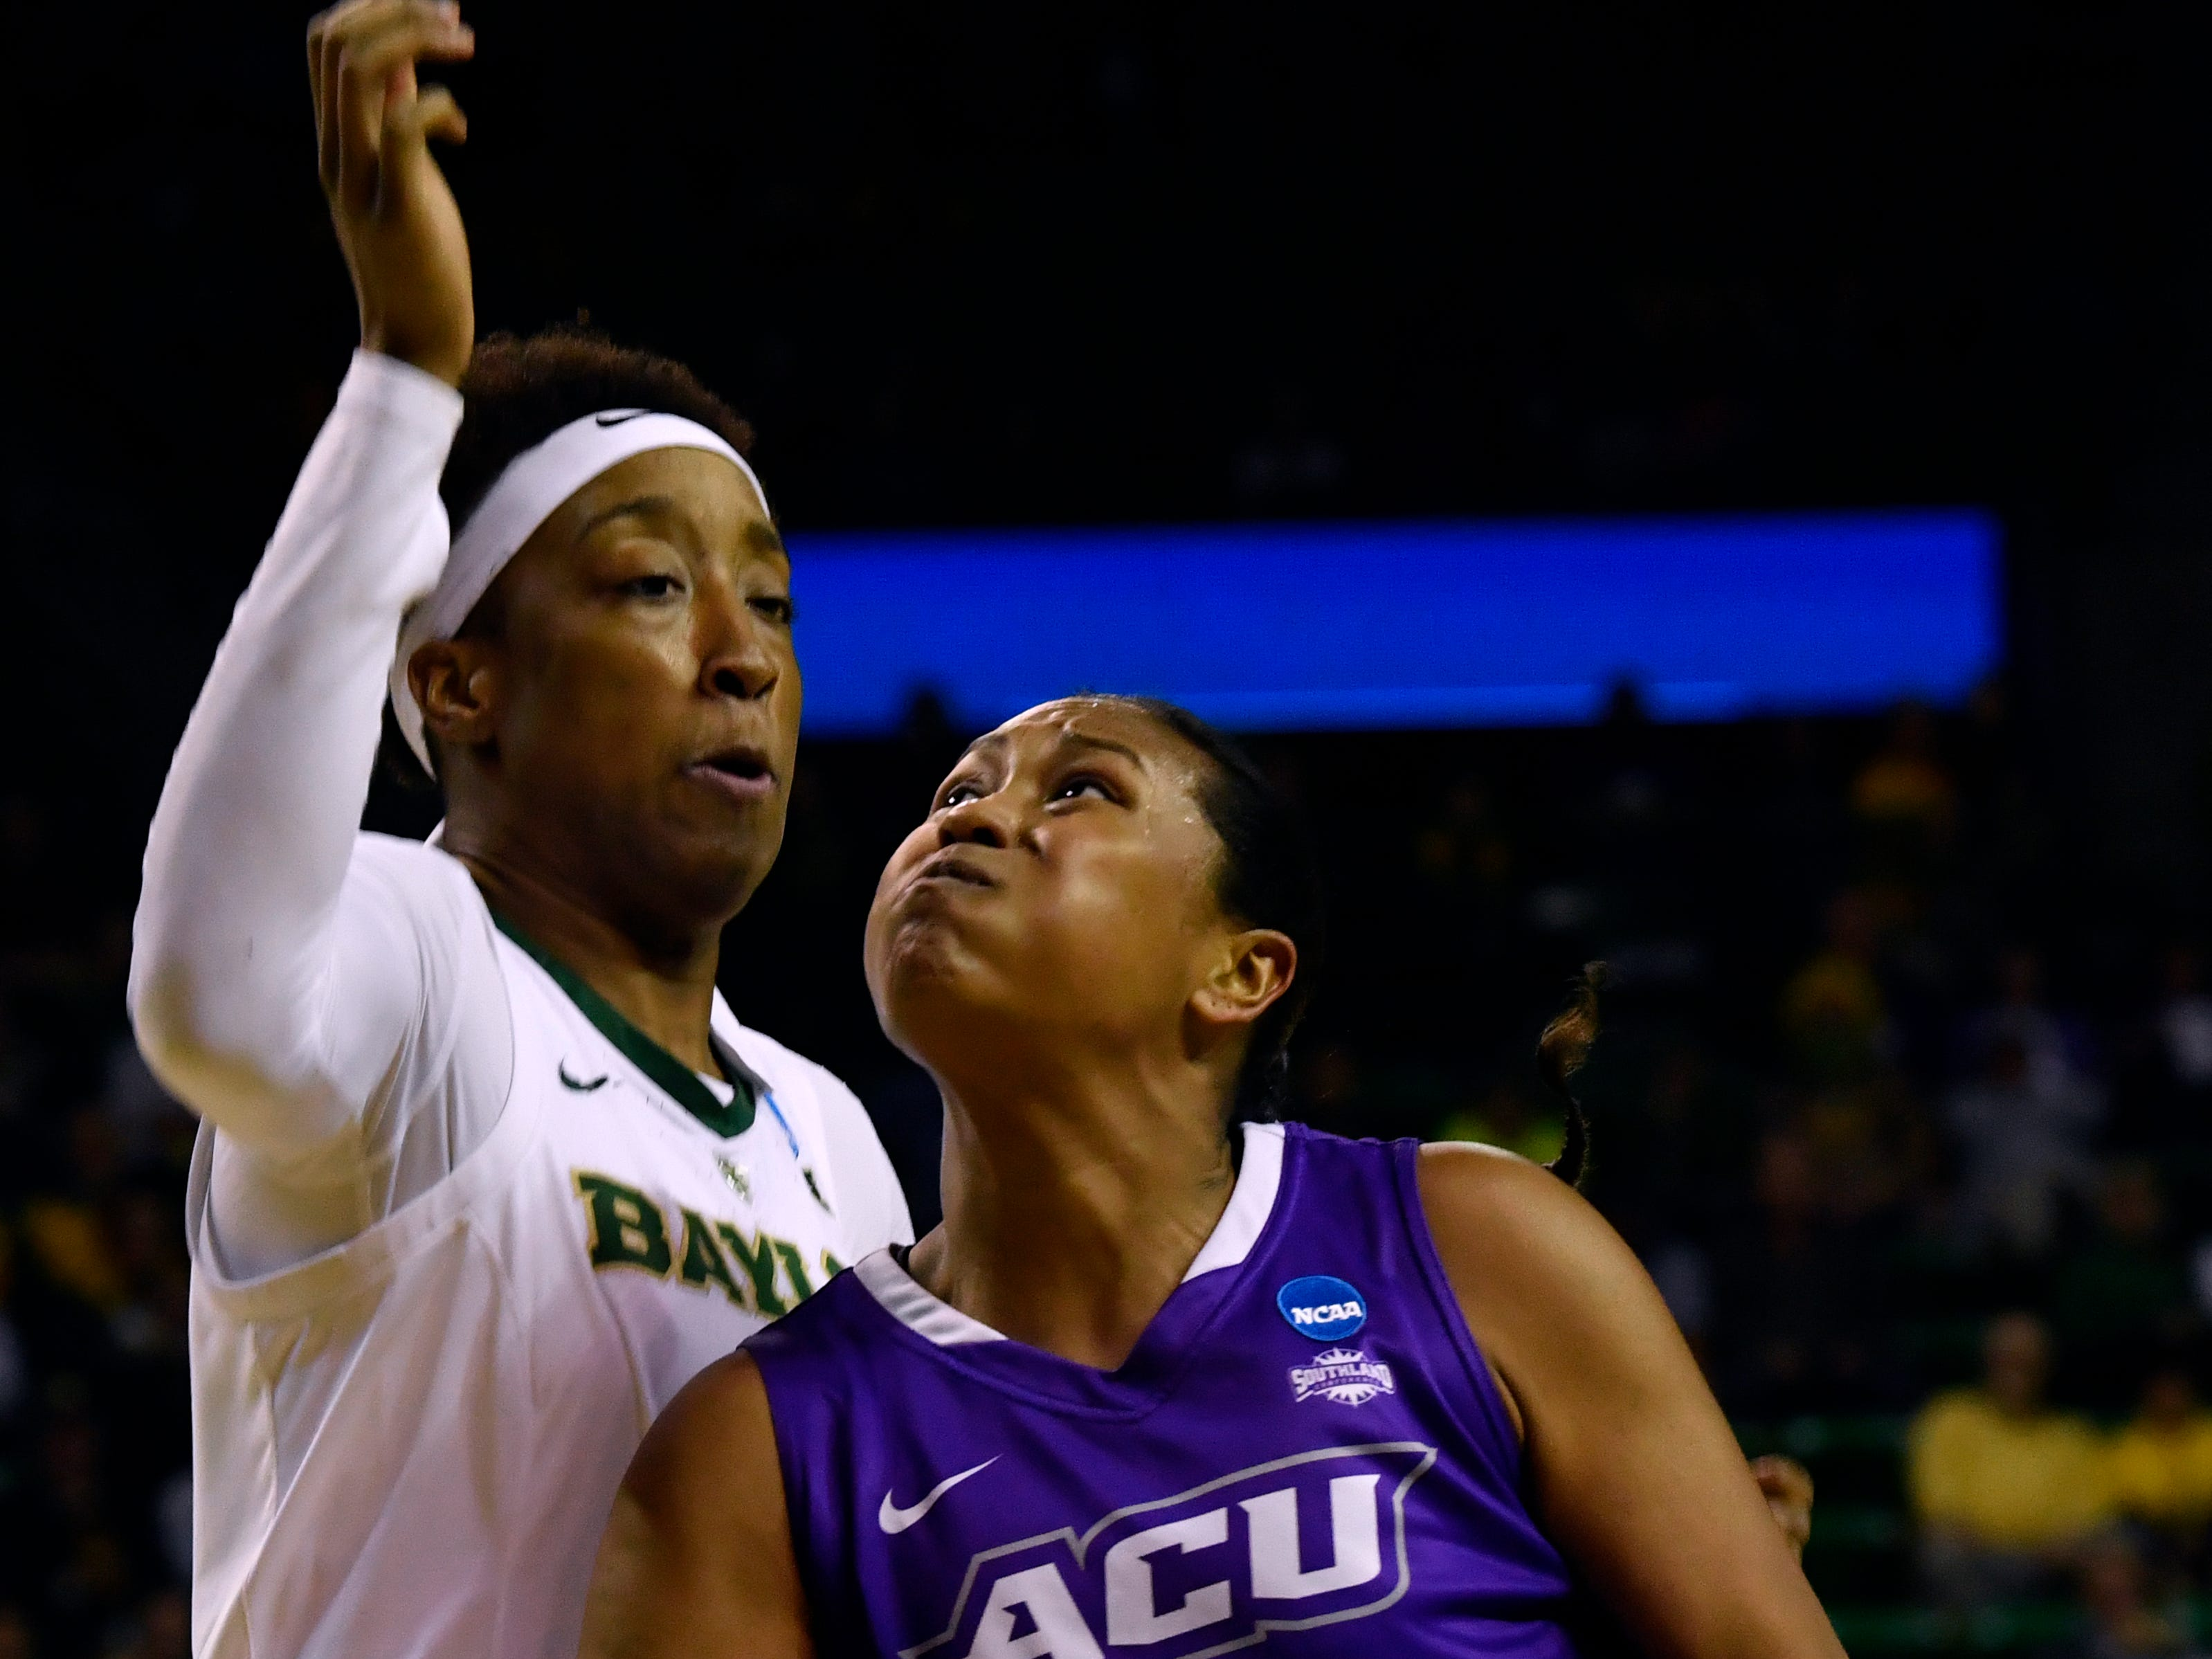 ACU forward Dominque Golightly shoulders Baylor forward Aquira DeCosta during Saturday's NCAA Tournament women's round 1 basketball game March 23, 2019. Baylor defeated Abilene Christian University, 95-38.